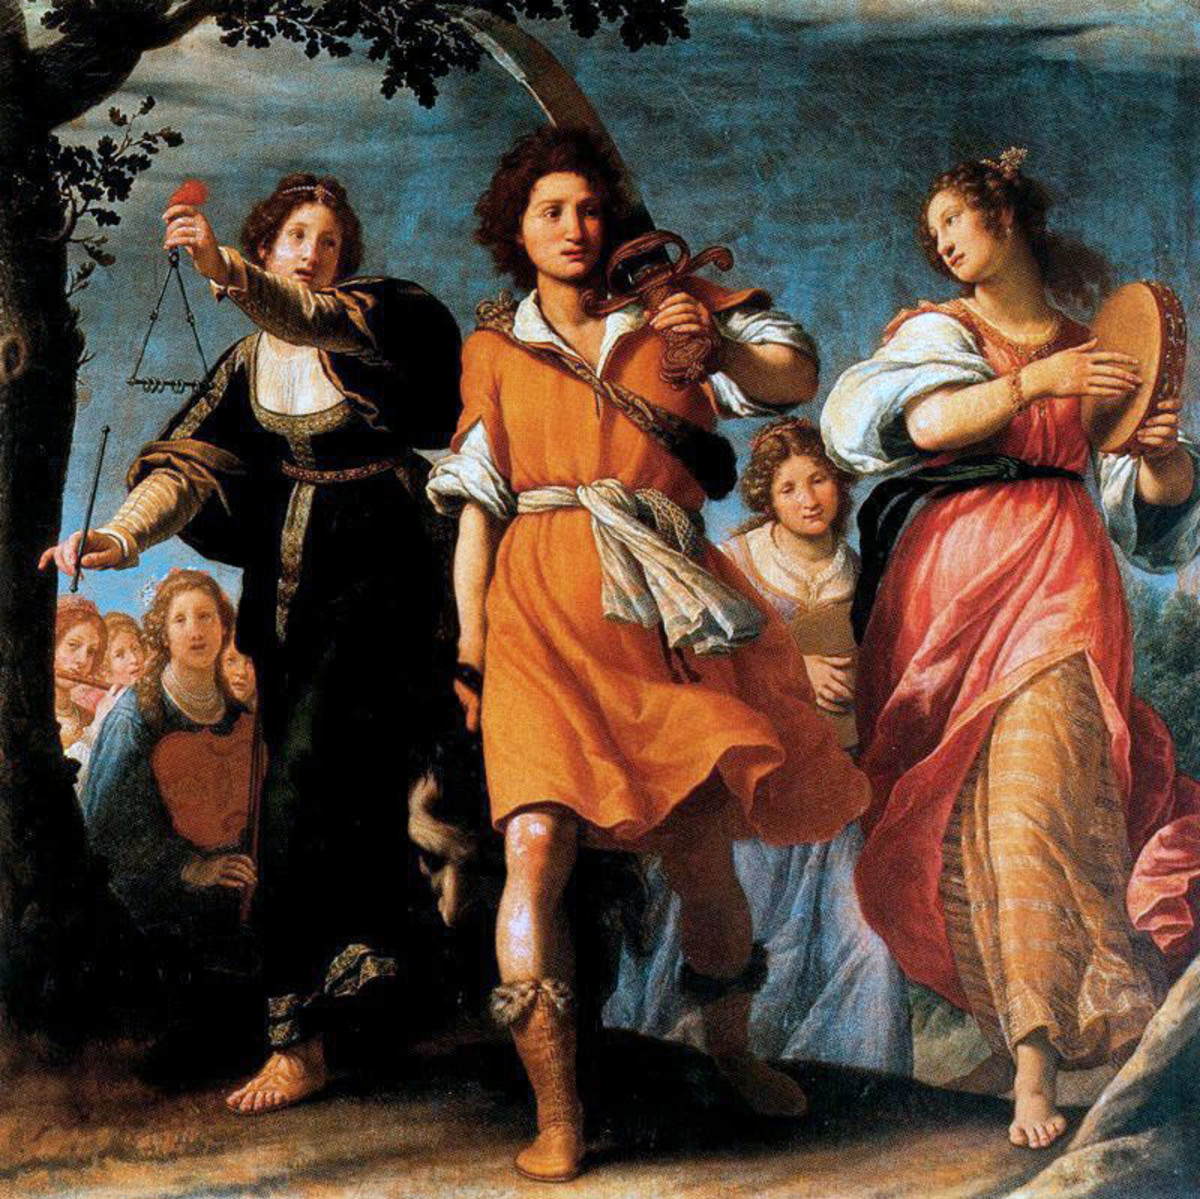 Painting of The Triumphant David. Artist: Matteo Rosselli. (1578-1650)